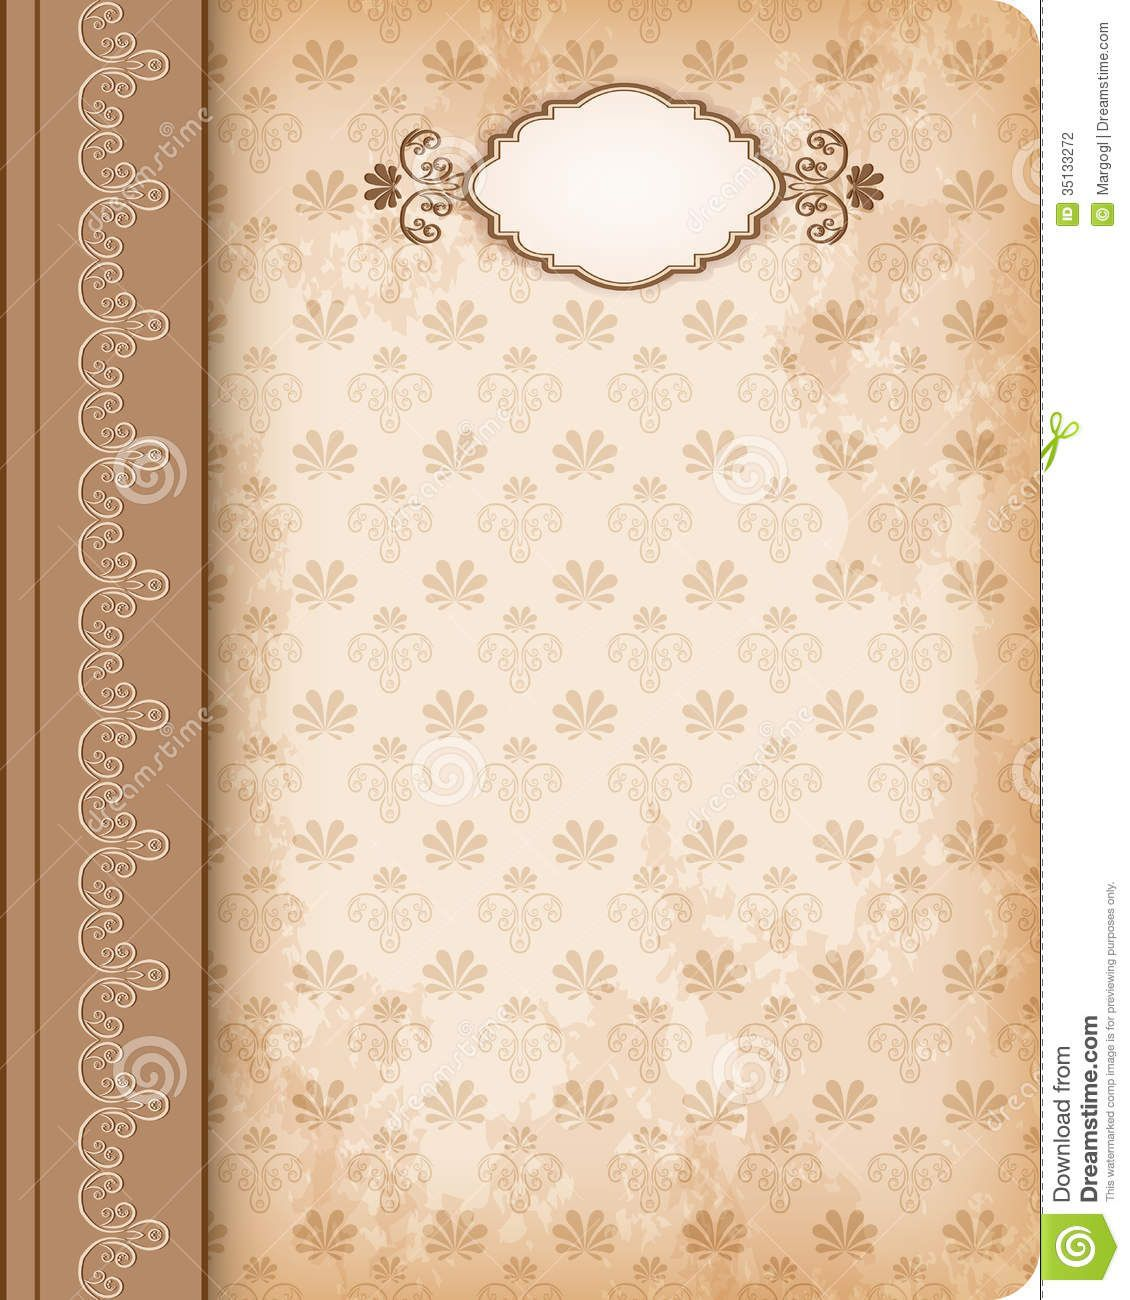 006 Sensational Old Book Cover Template Picture  Fashioned WordFull